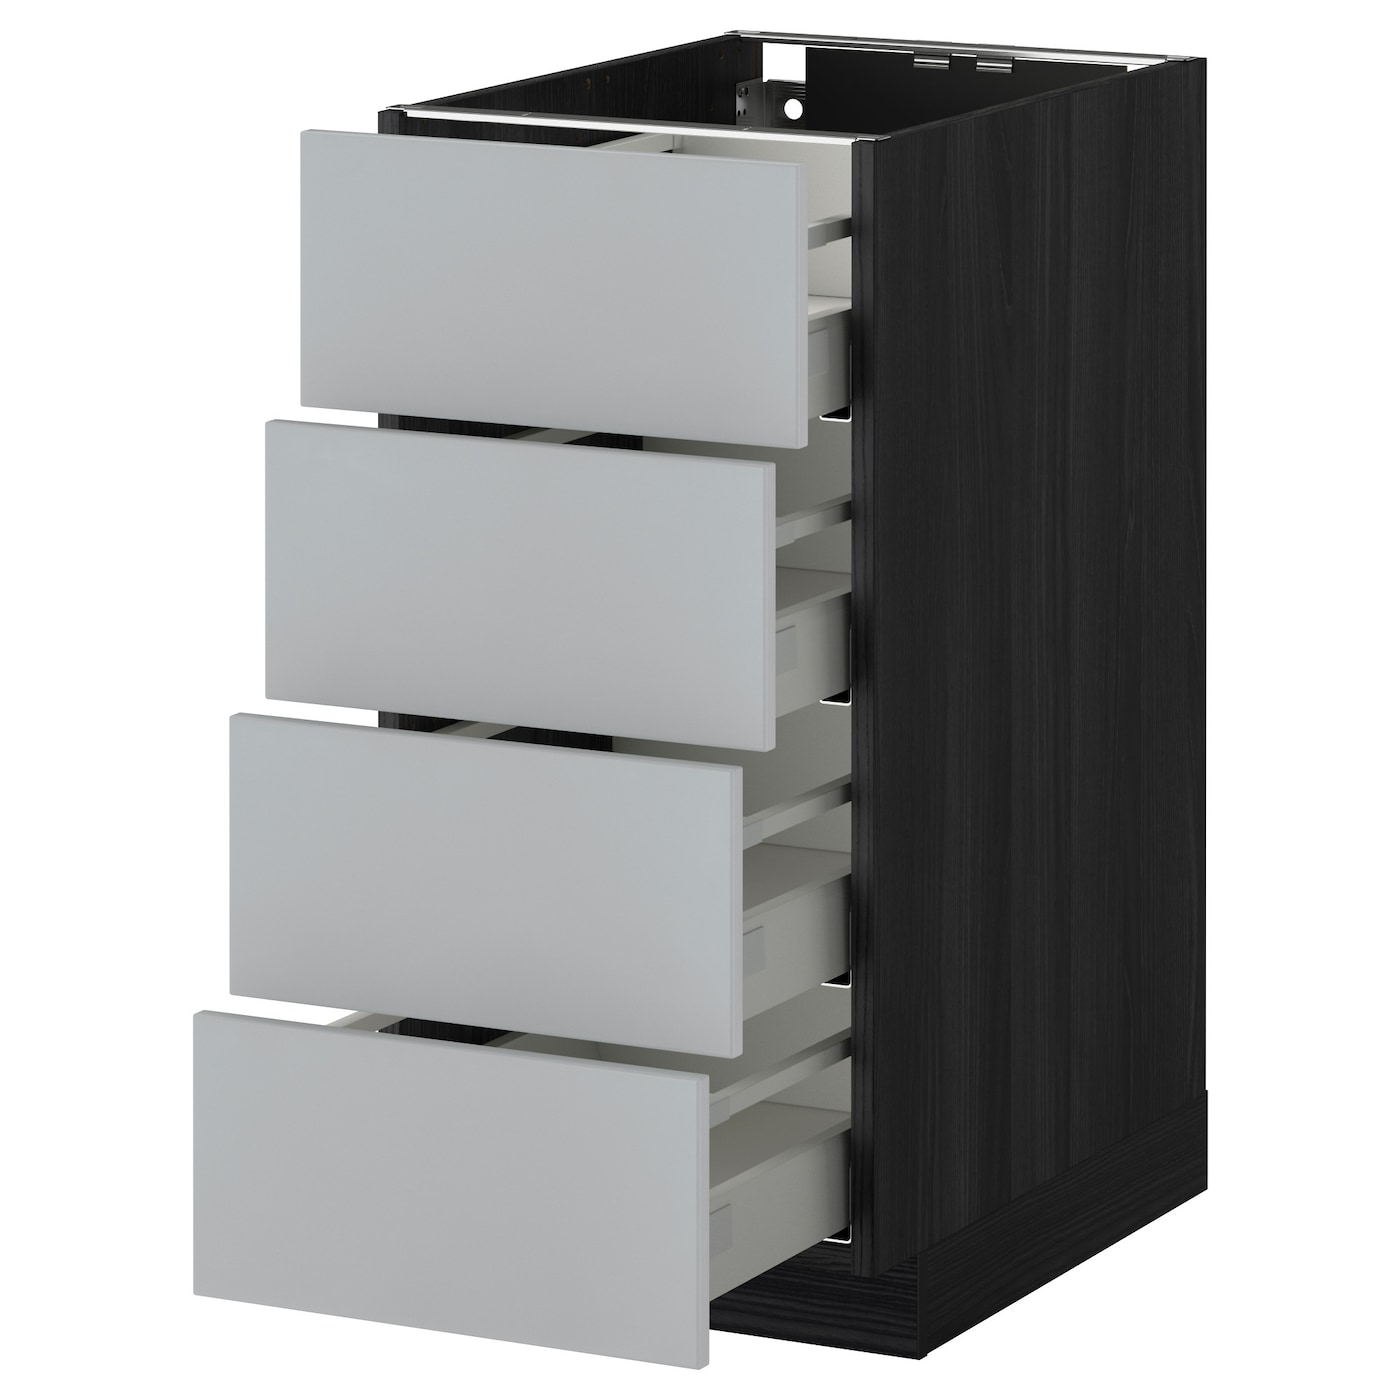 IKEA METOD/MAXIMERA base cab 4 frnts/4 drawers Smooth-running drawers with stop.